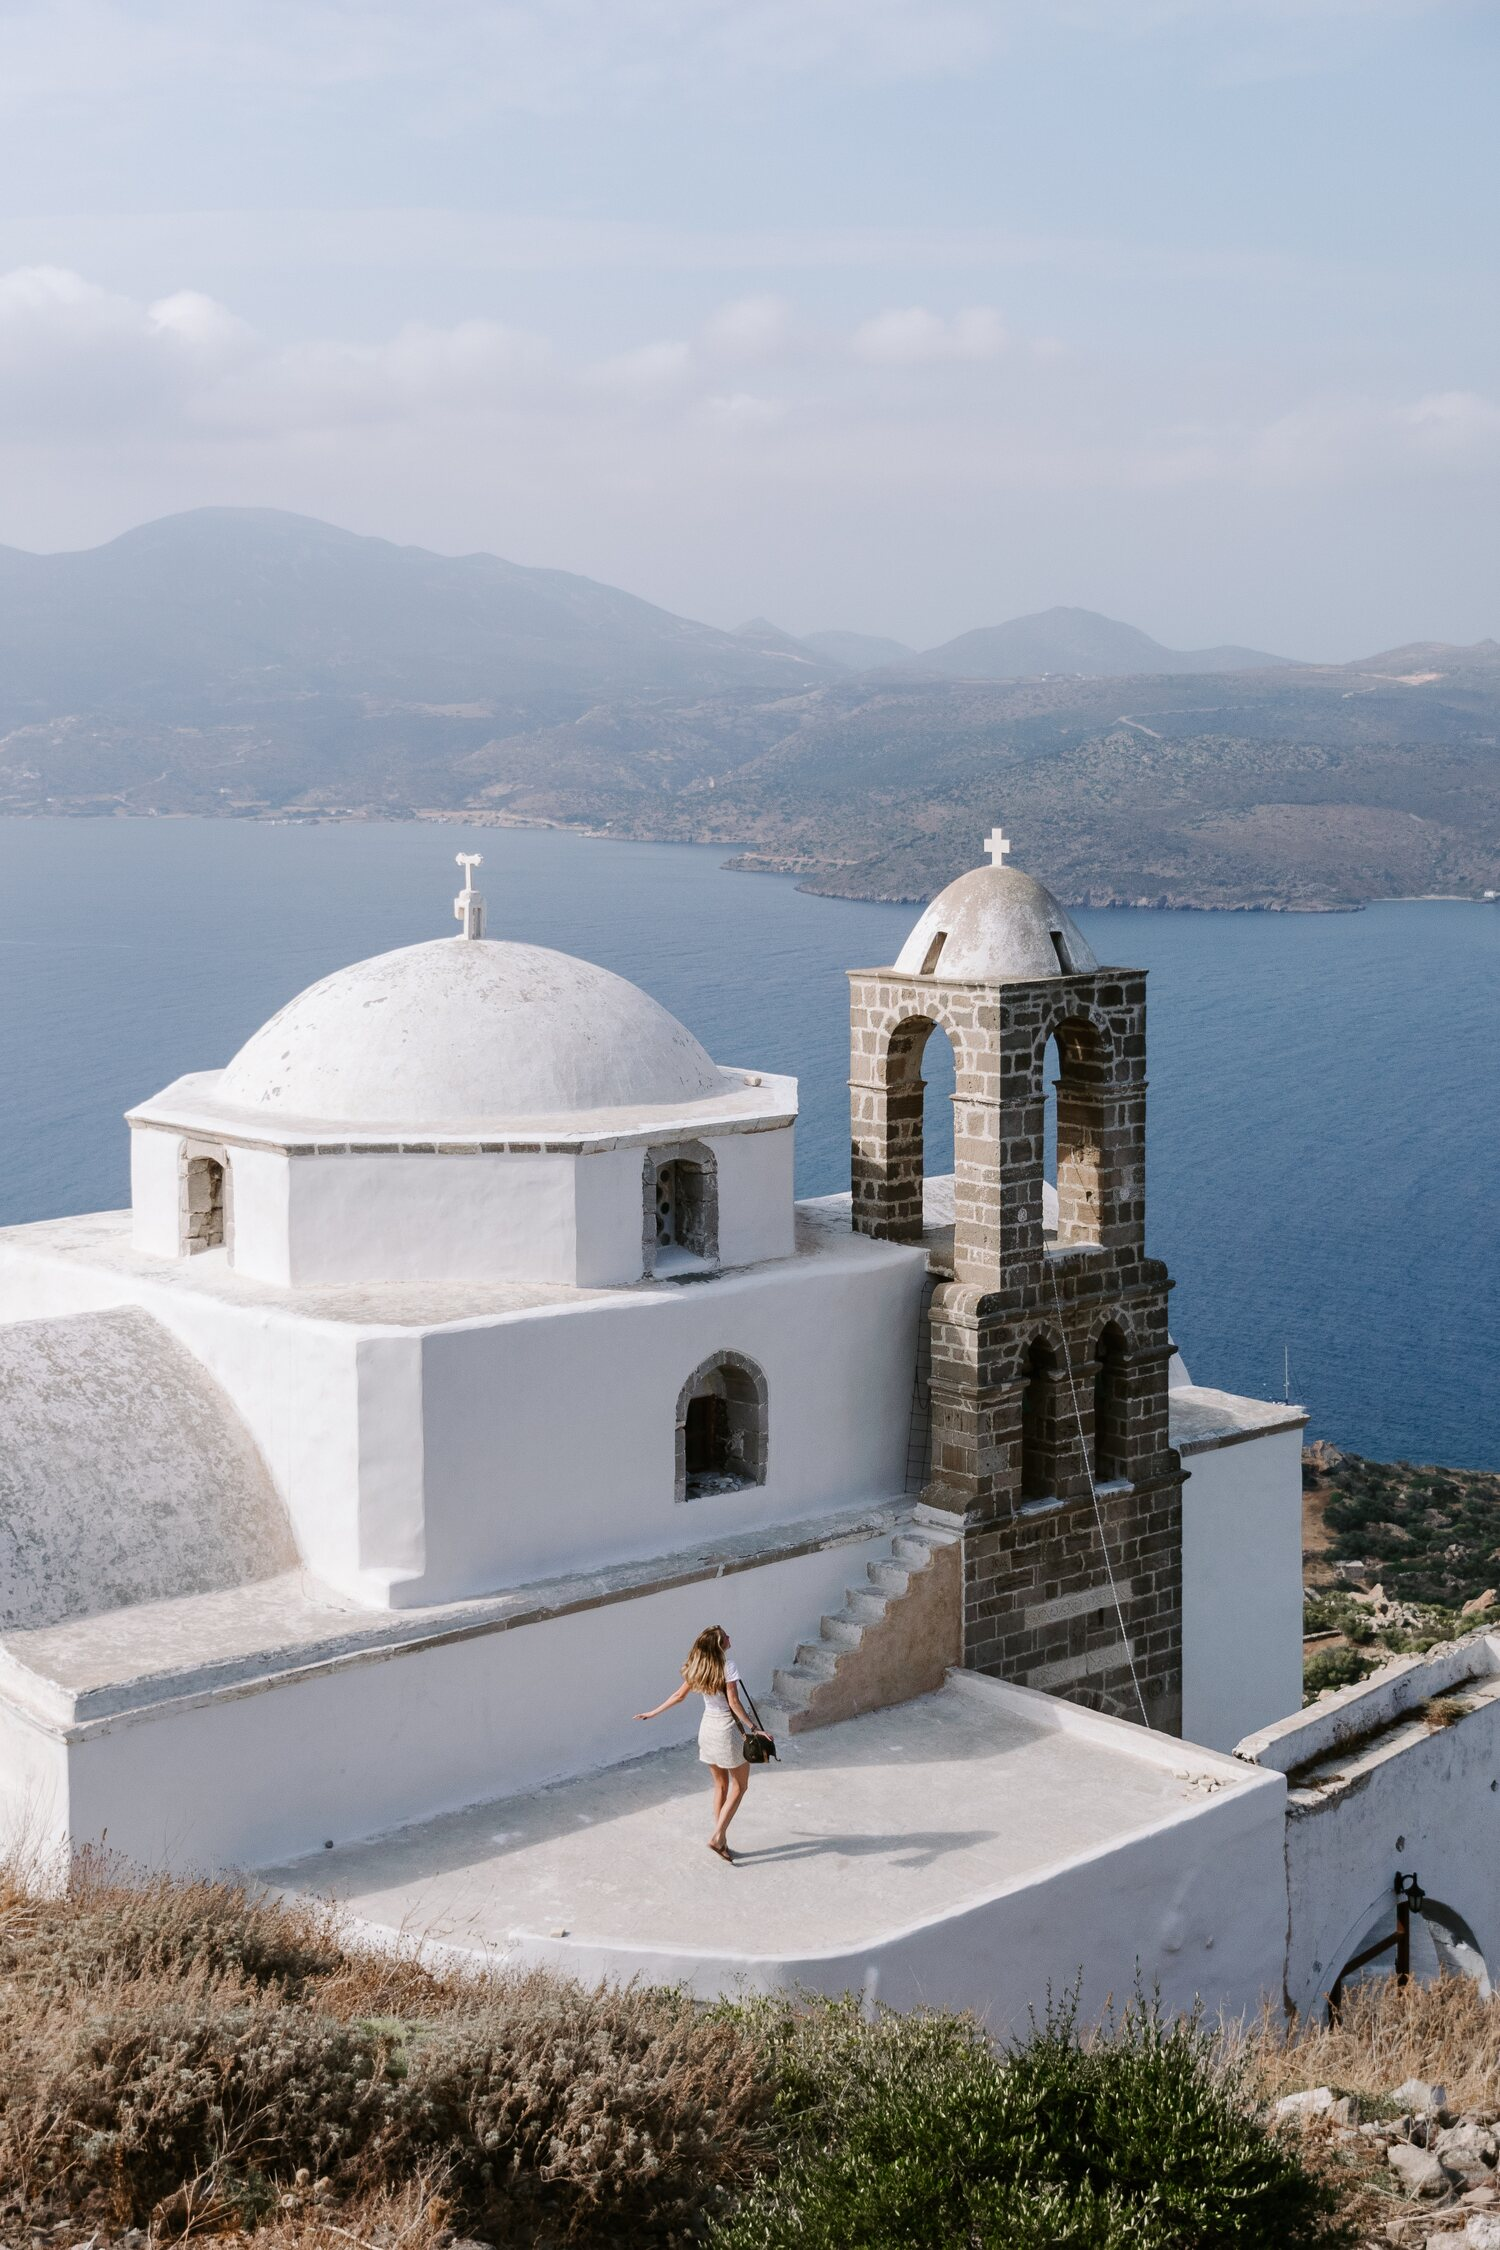 The best view point in the Greek island of Milos is definitely from Plaka Castle and it is perfect for sunset